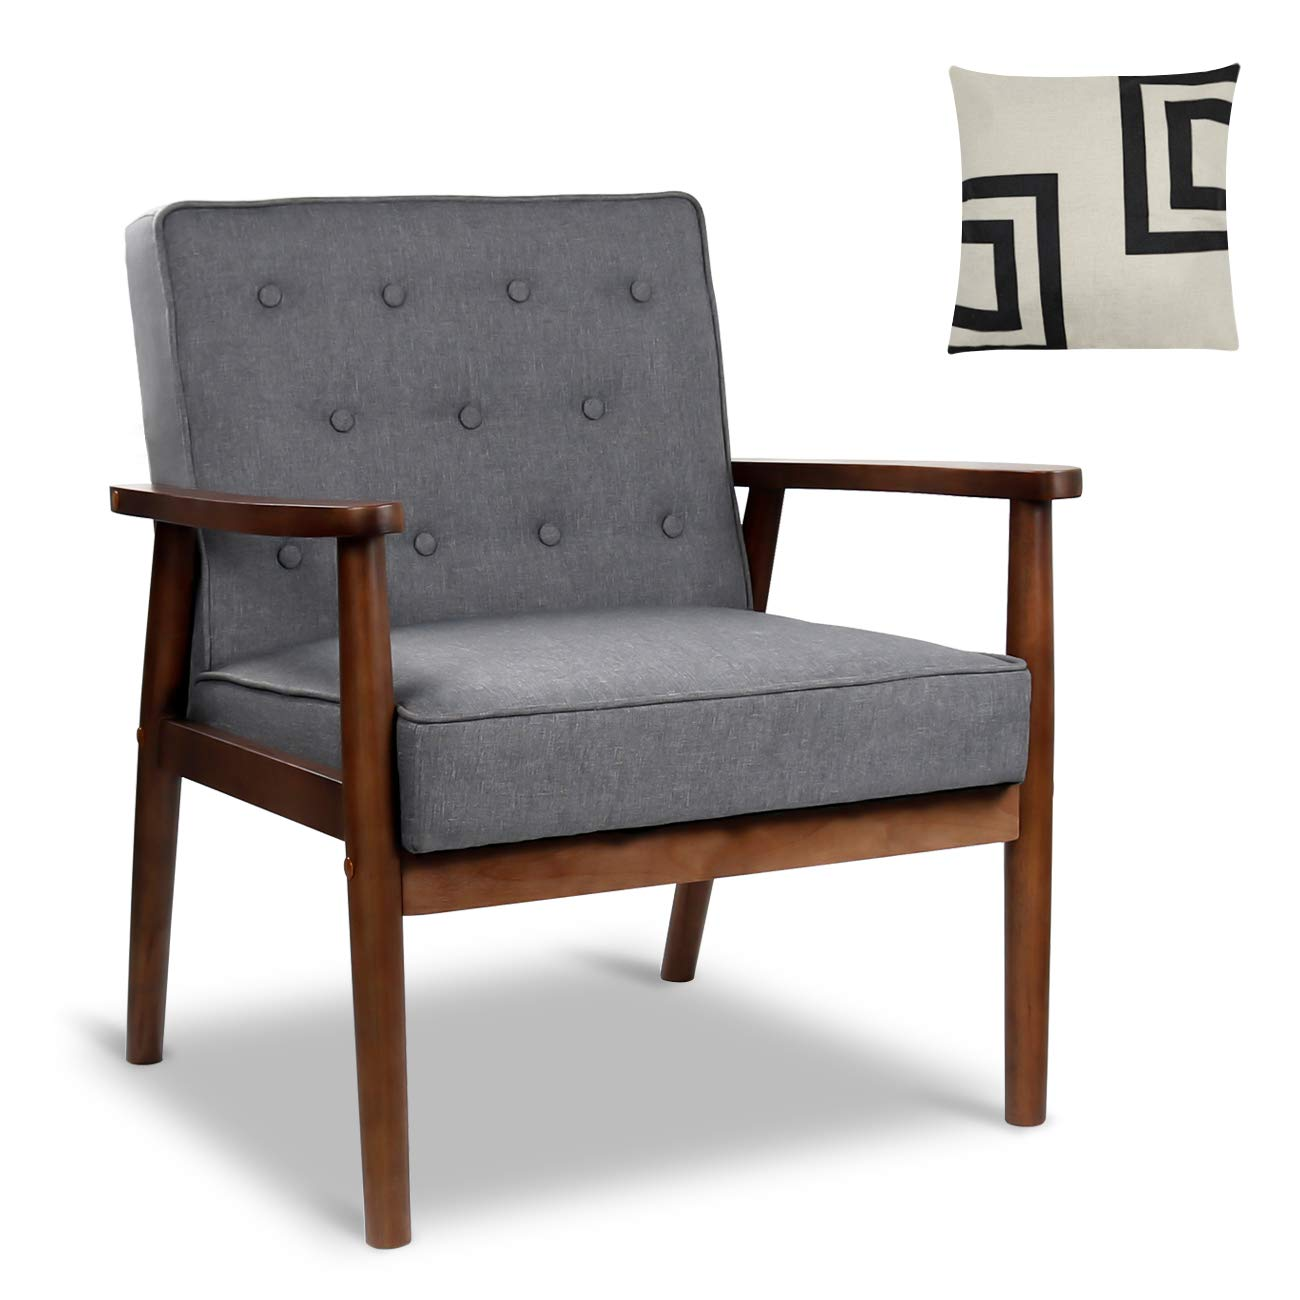 Mid Century Retro Modern Accent Chair Wooden Arm Upholstered Tufted Back Lounge Chairs Seat Size 244 183 Deep Grey Fabric